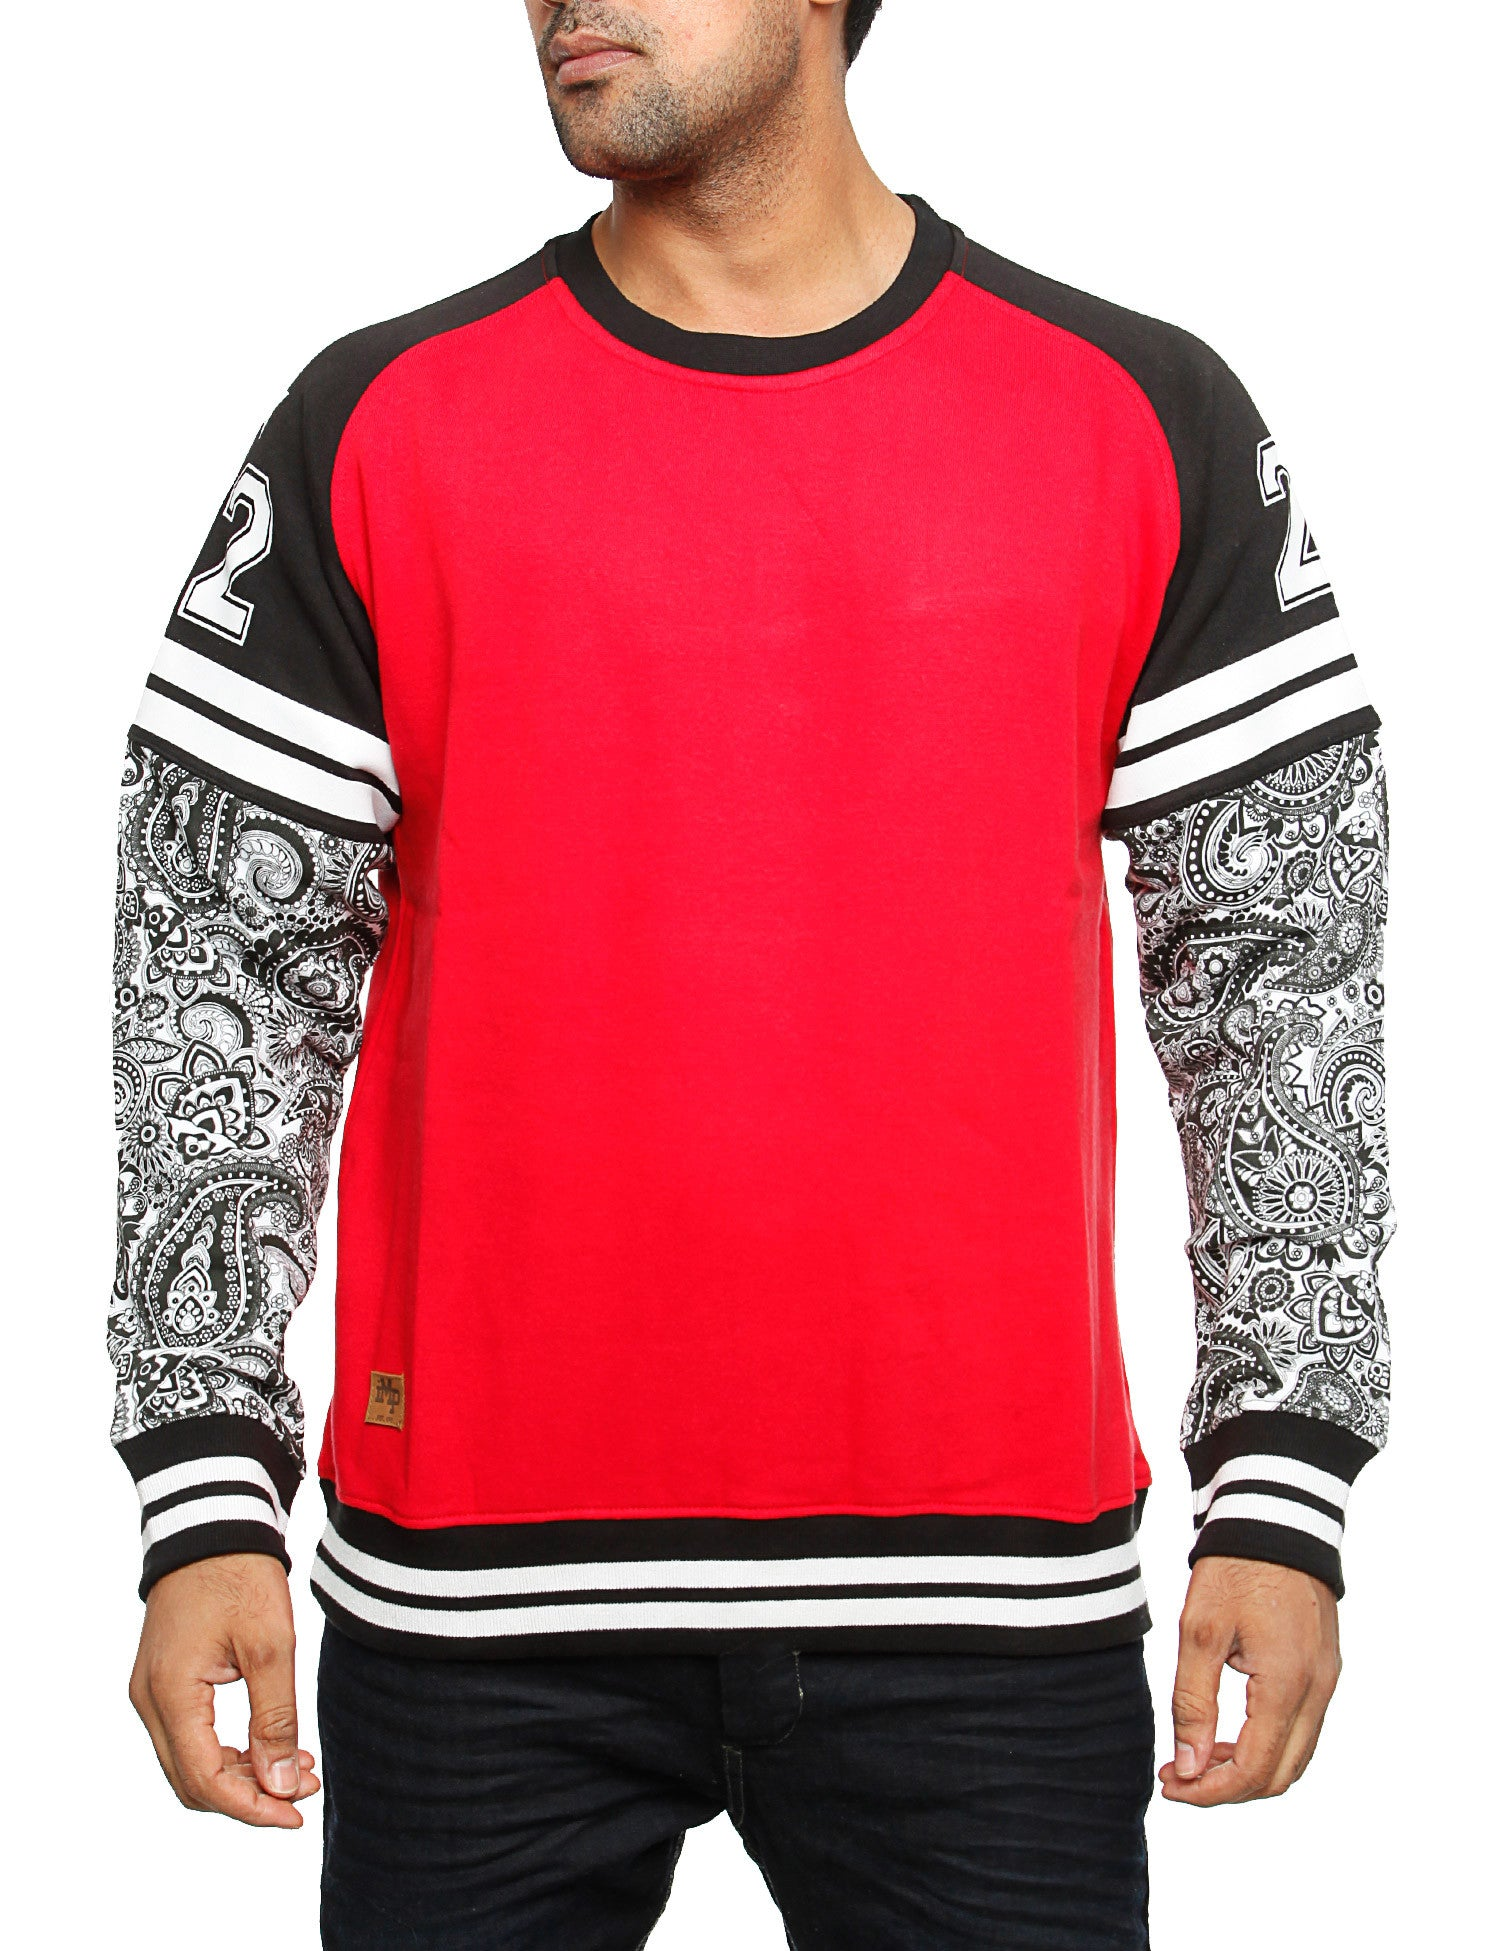 Imperious CS80 2 Fer Sleeve Sweatshirt Red